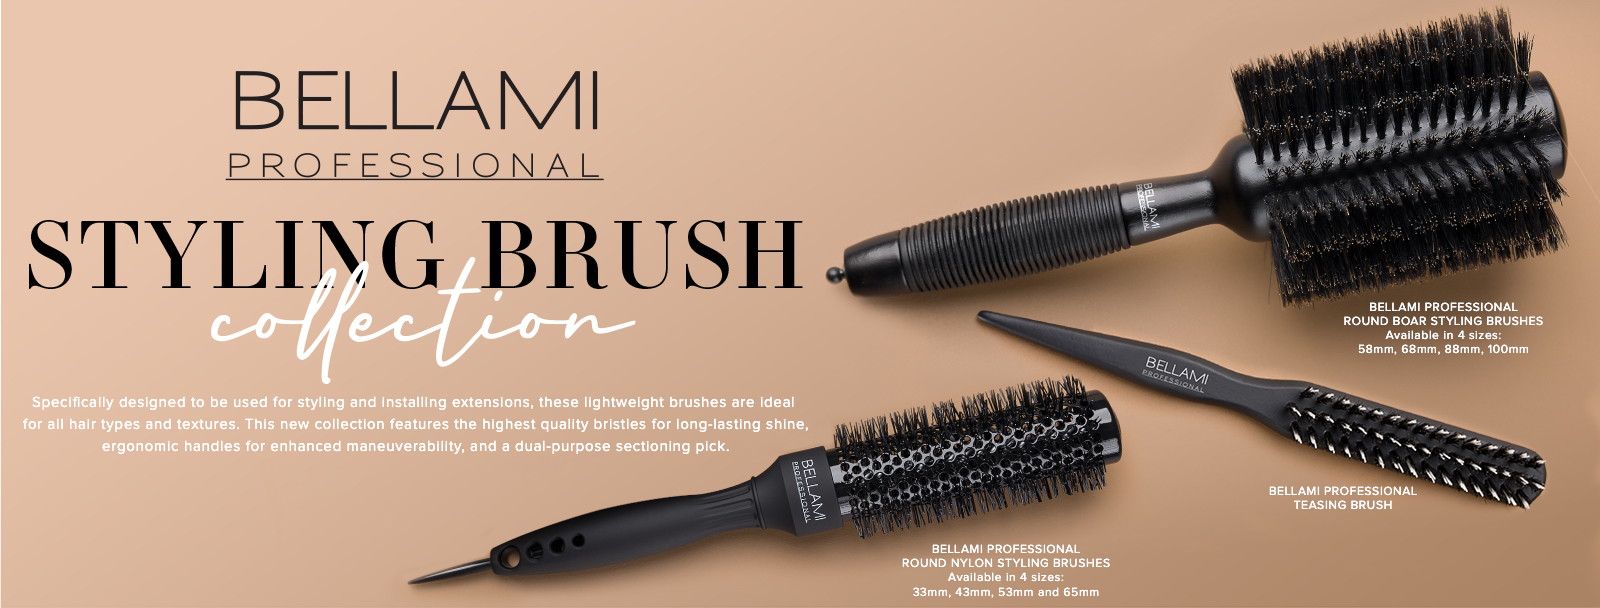 BELLAMI PROFESSIONAL STYLING BRUSHES